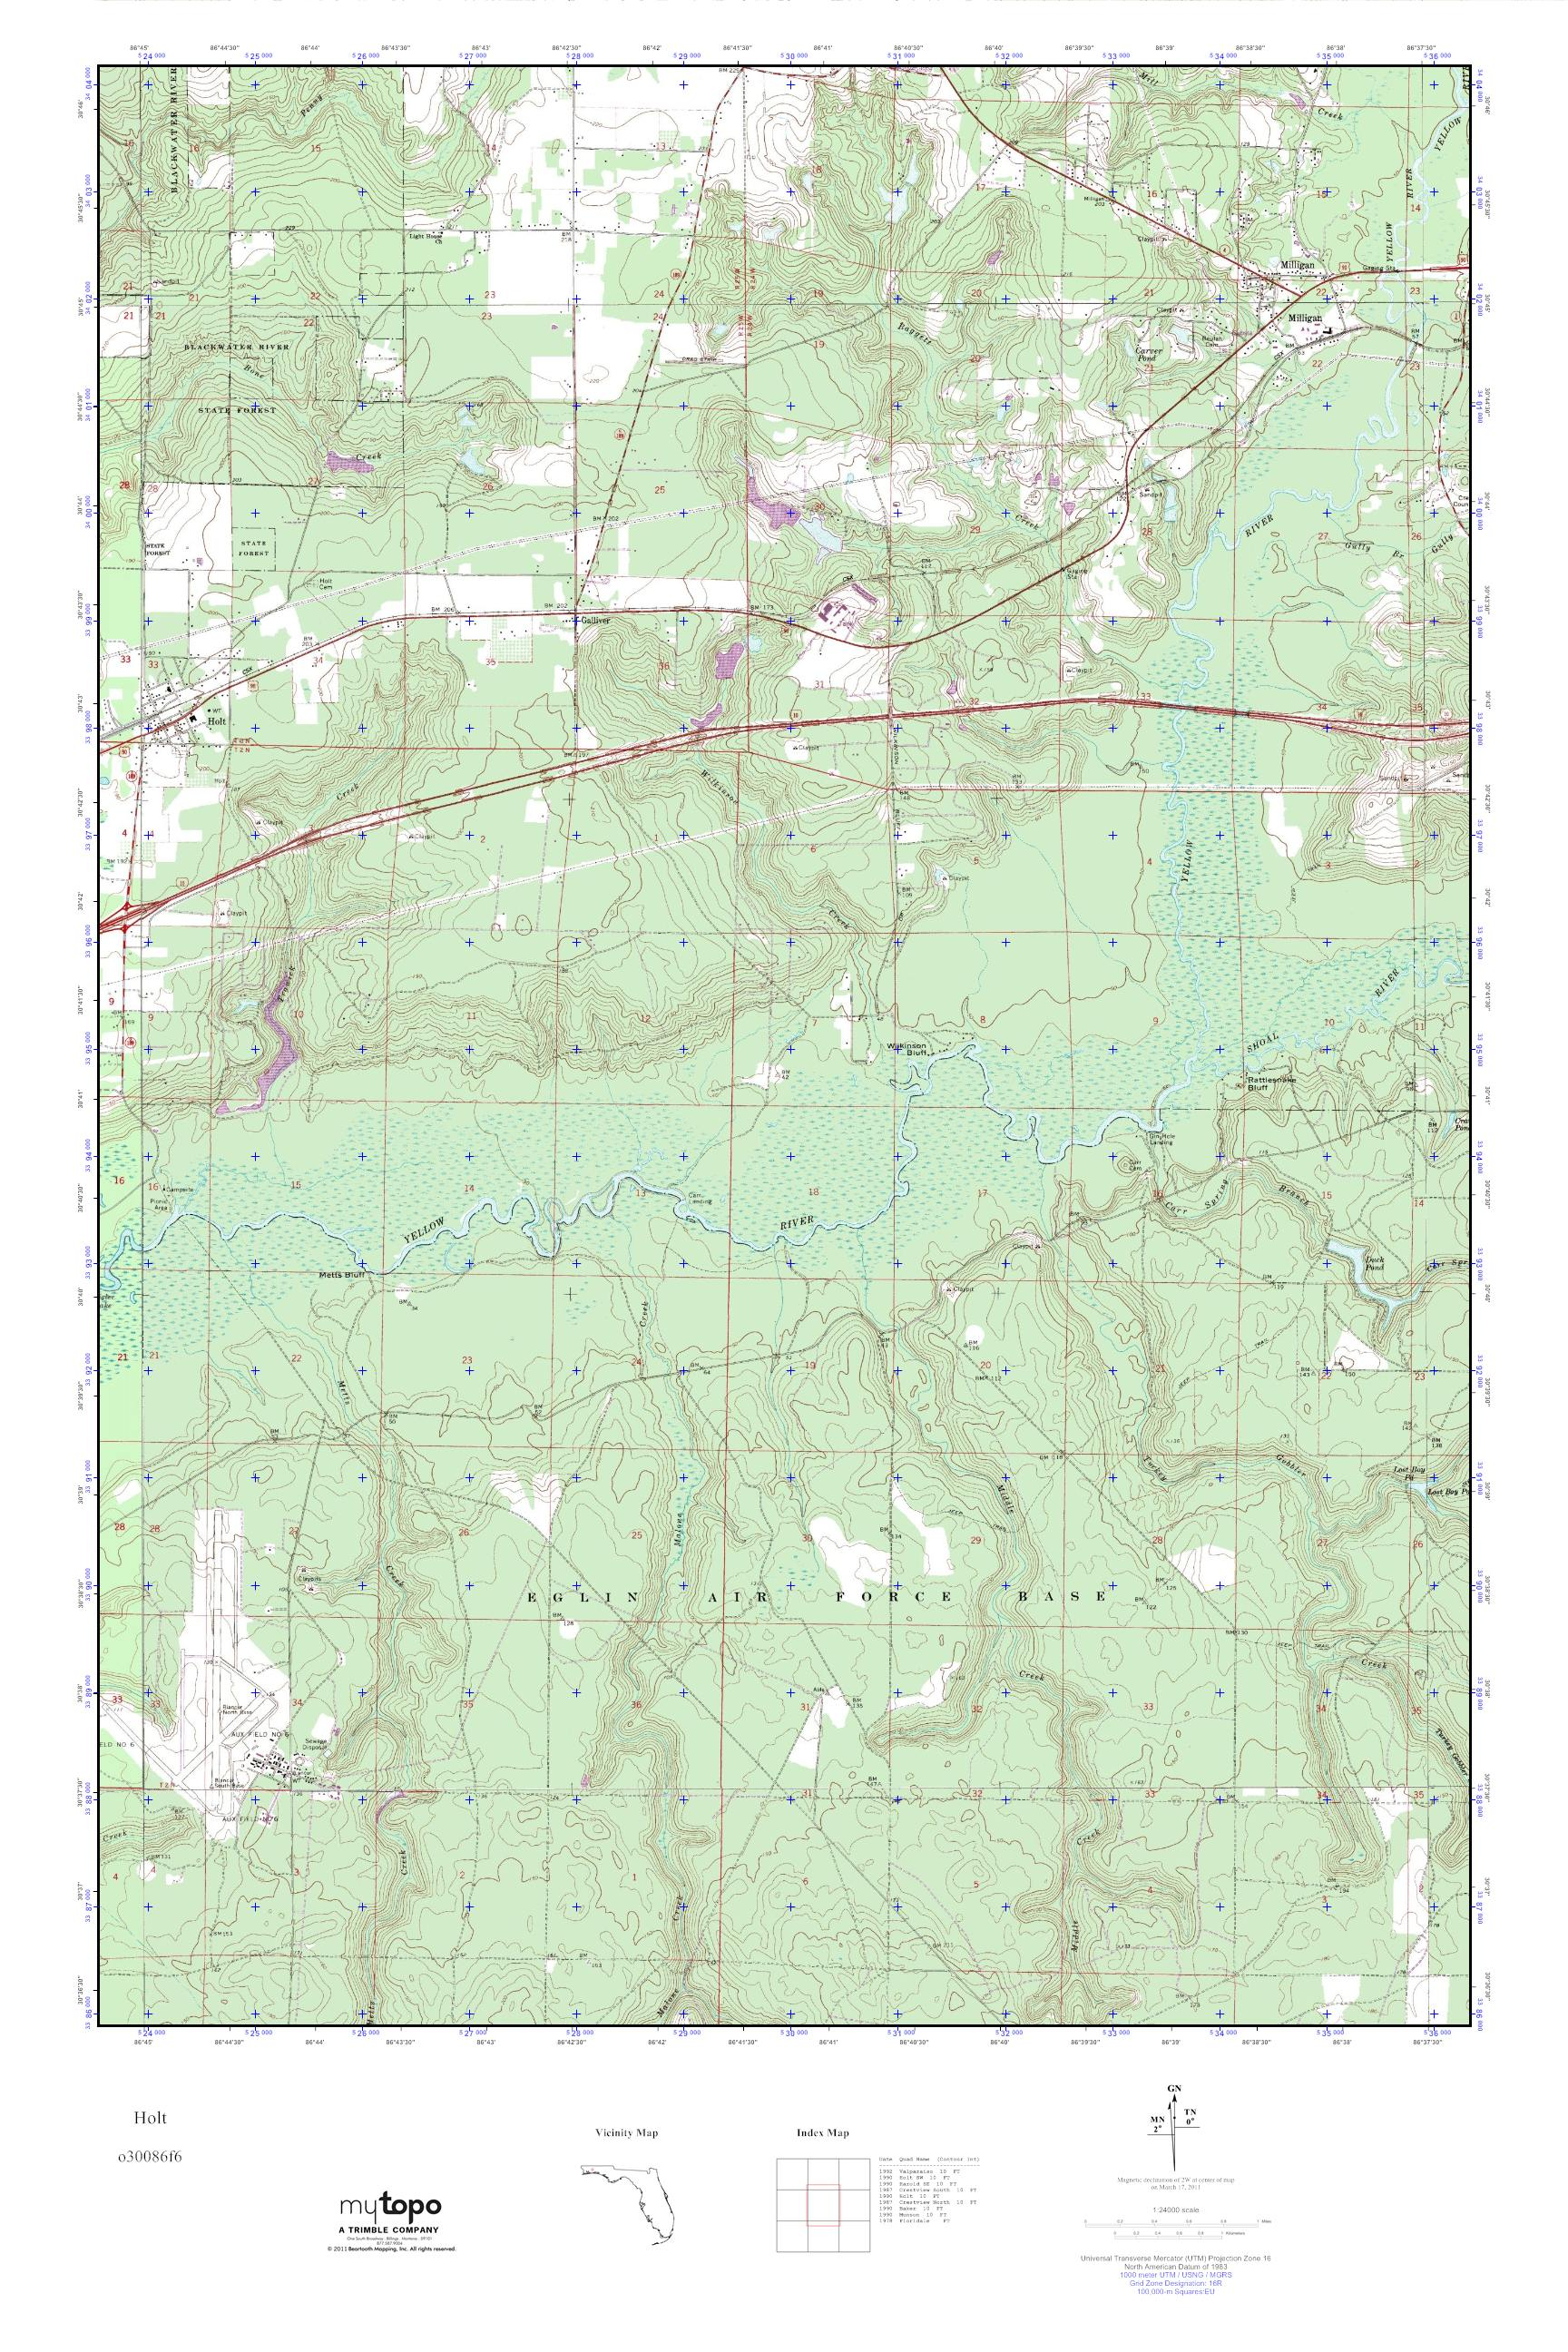 Holt Florida Map.Mytopo Holt Florida Usgs Quad Topo Map